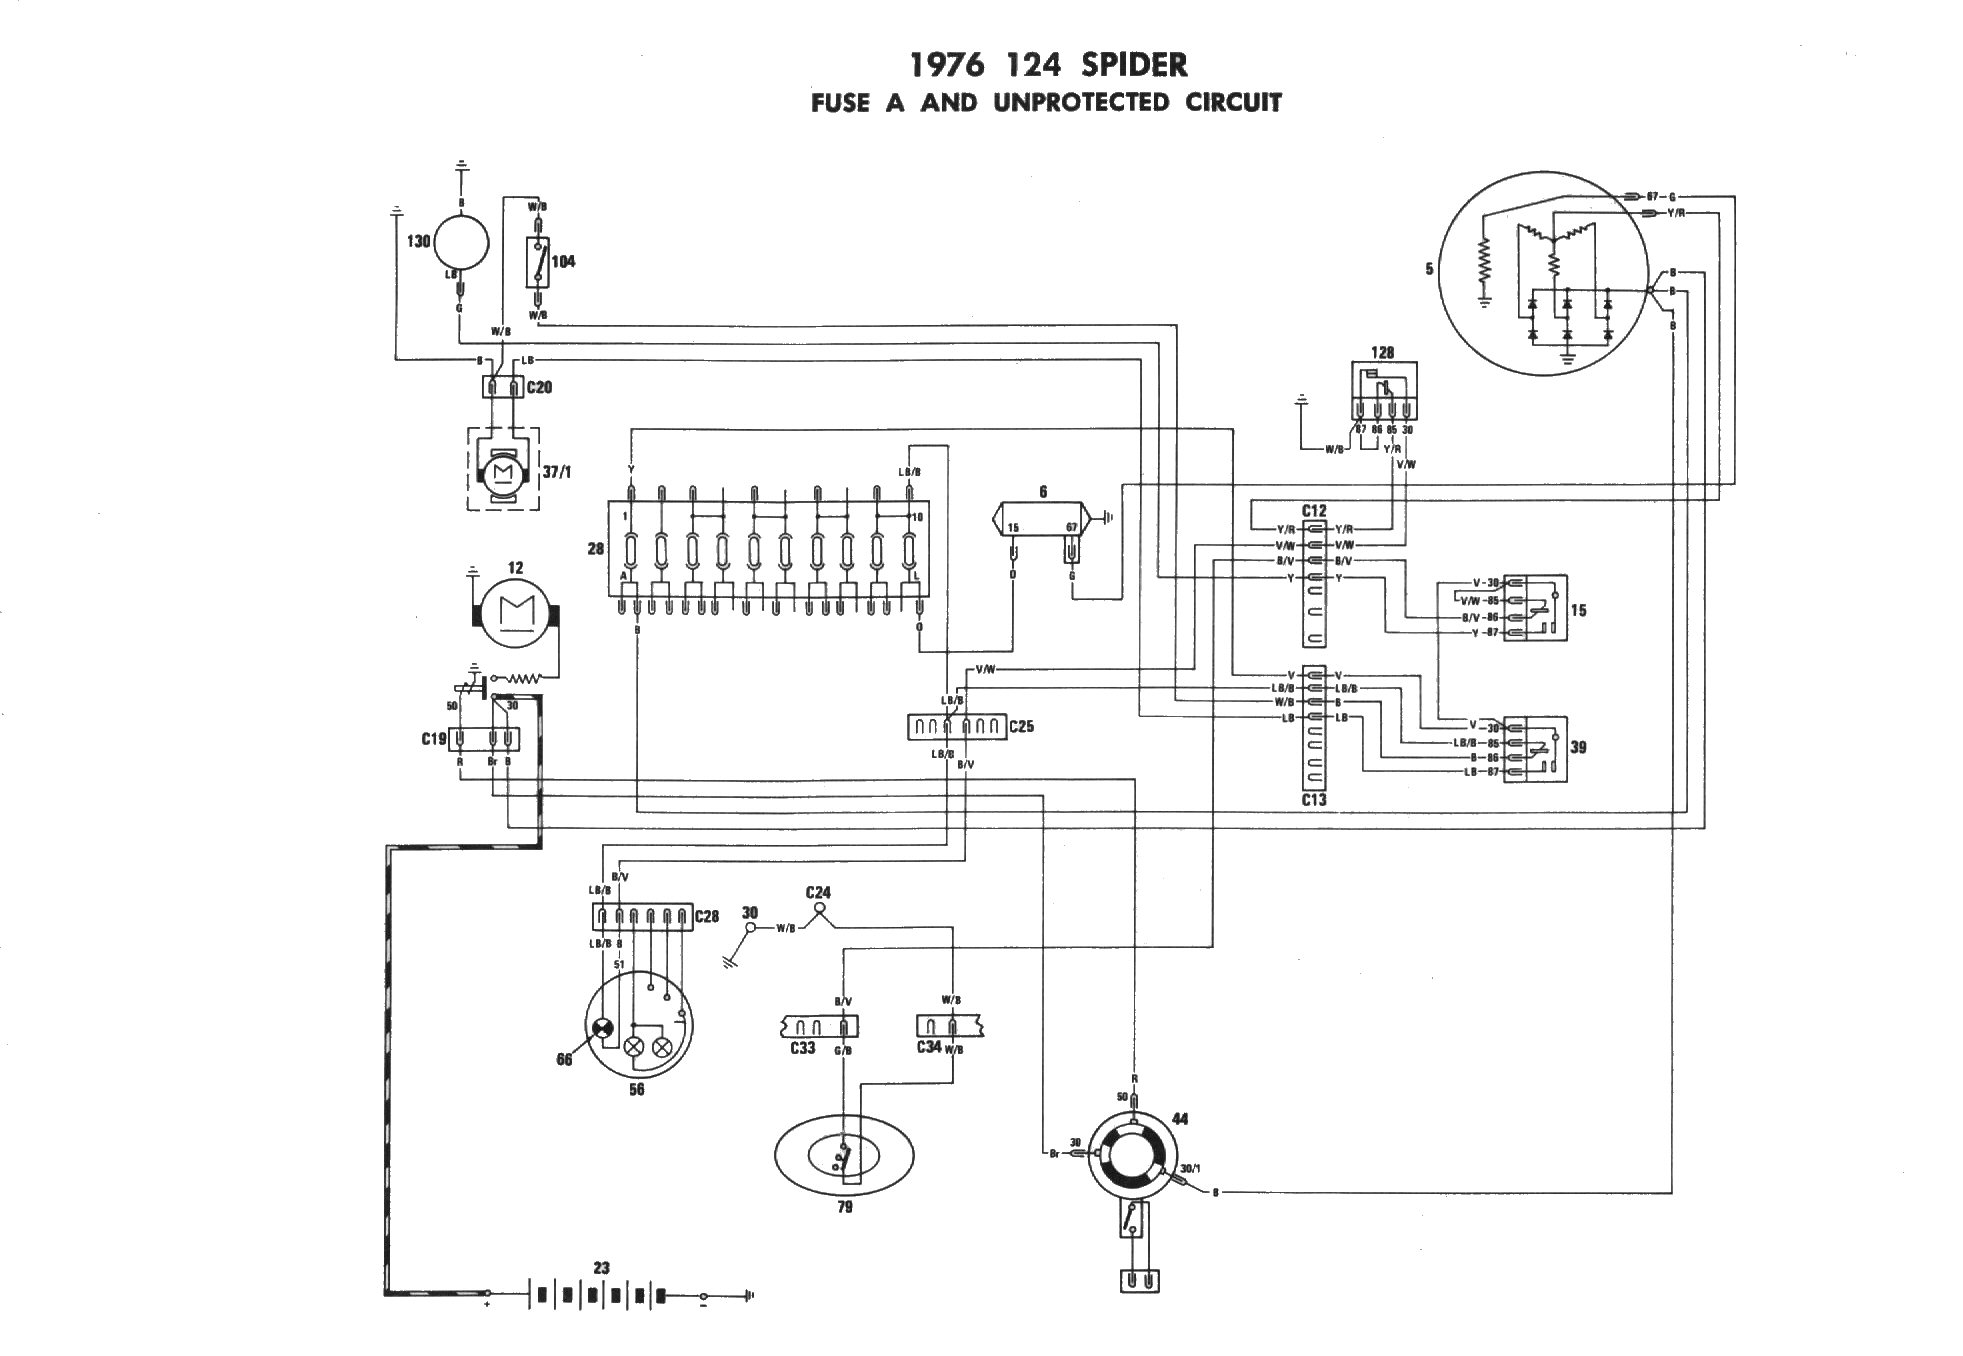 Fiat 124 Spider 1977 Fuse Box Diagram : 37 Wiring Diagram